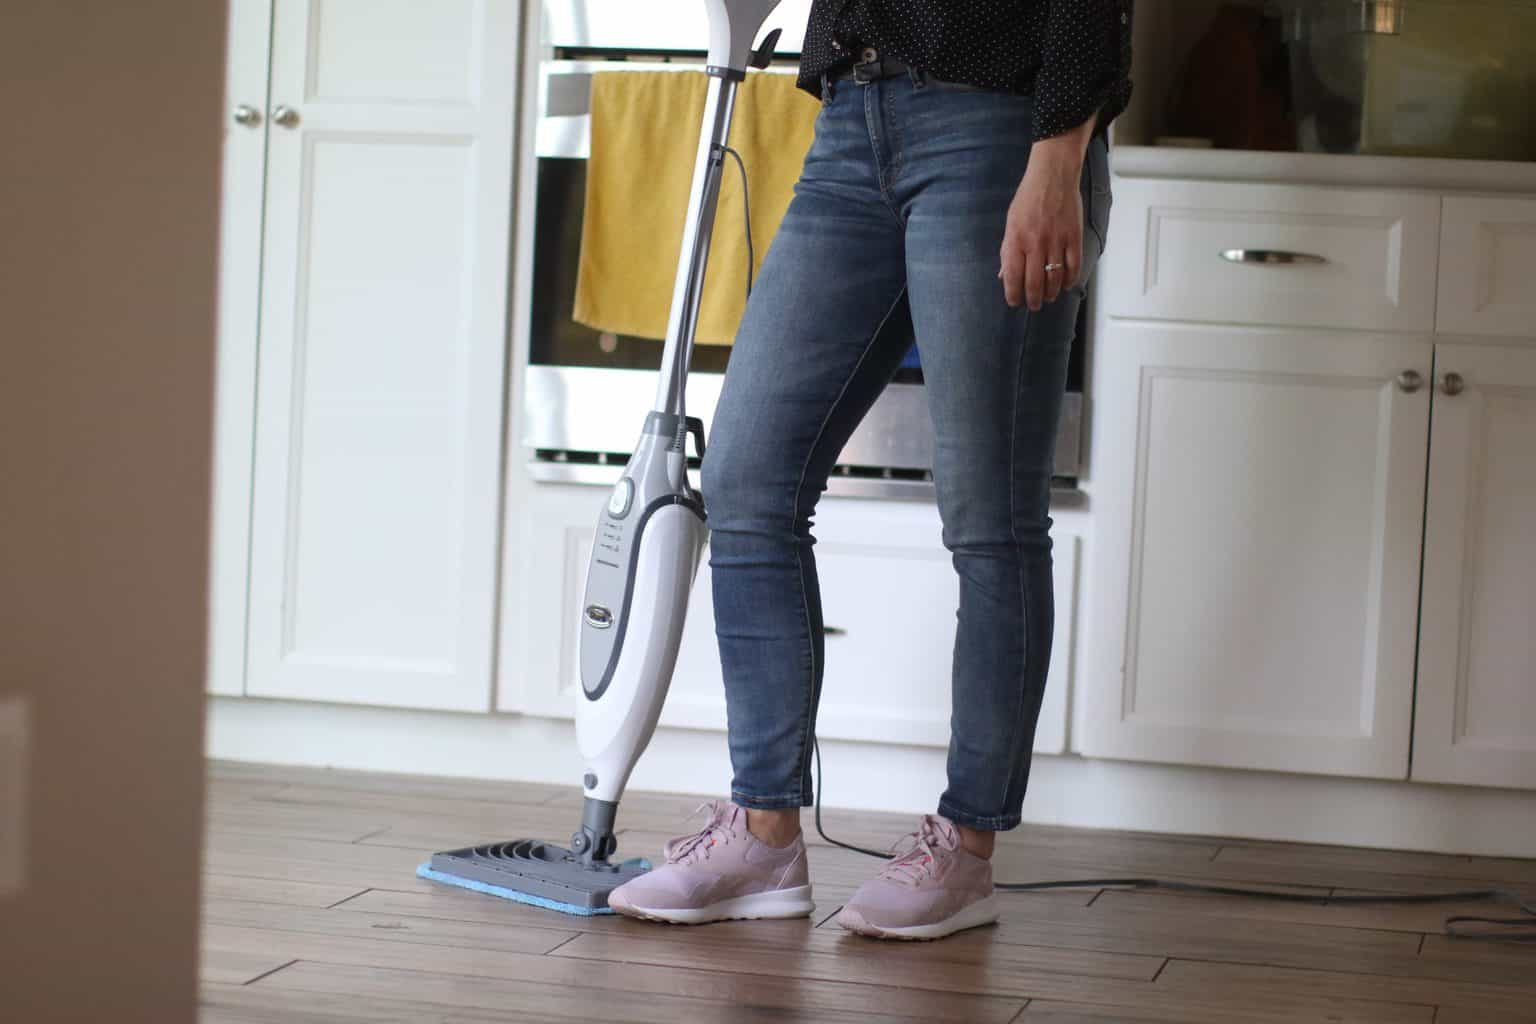 Woman about to use her steam cleaner